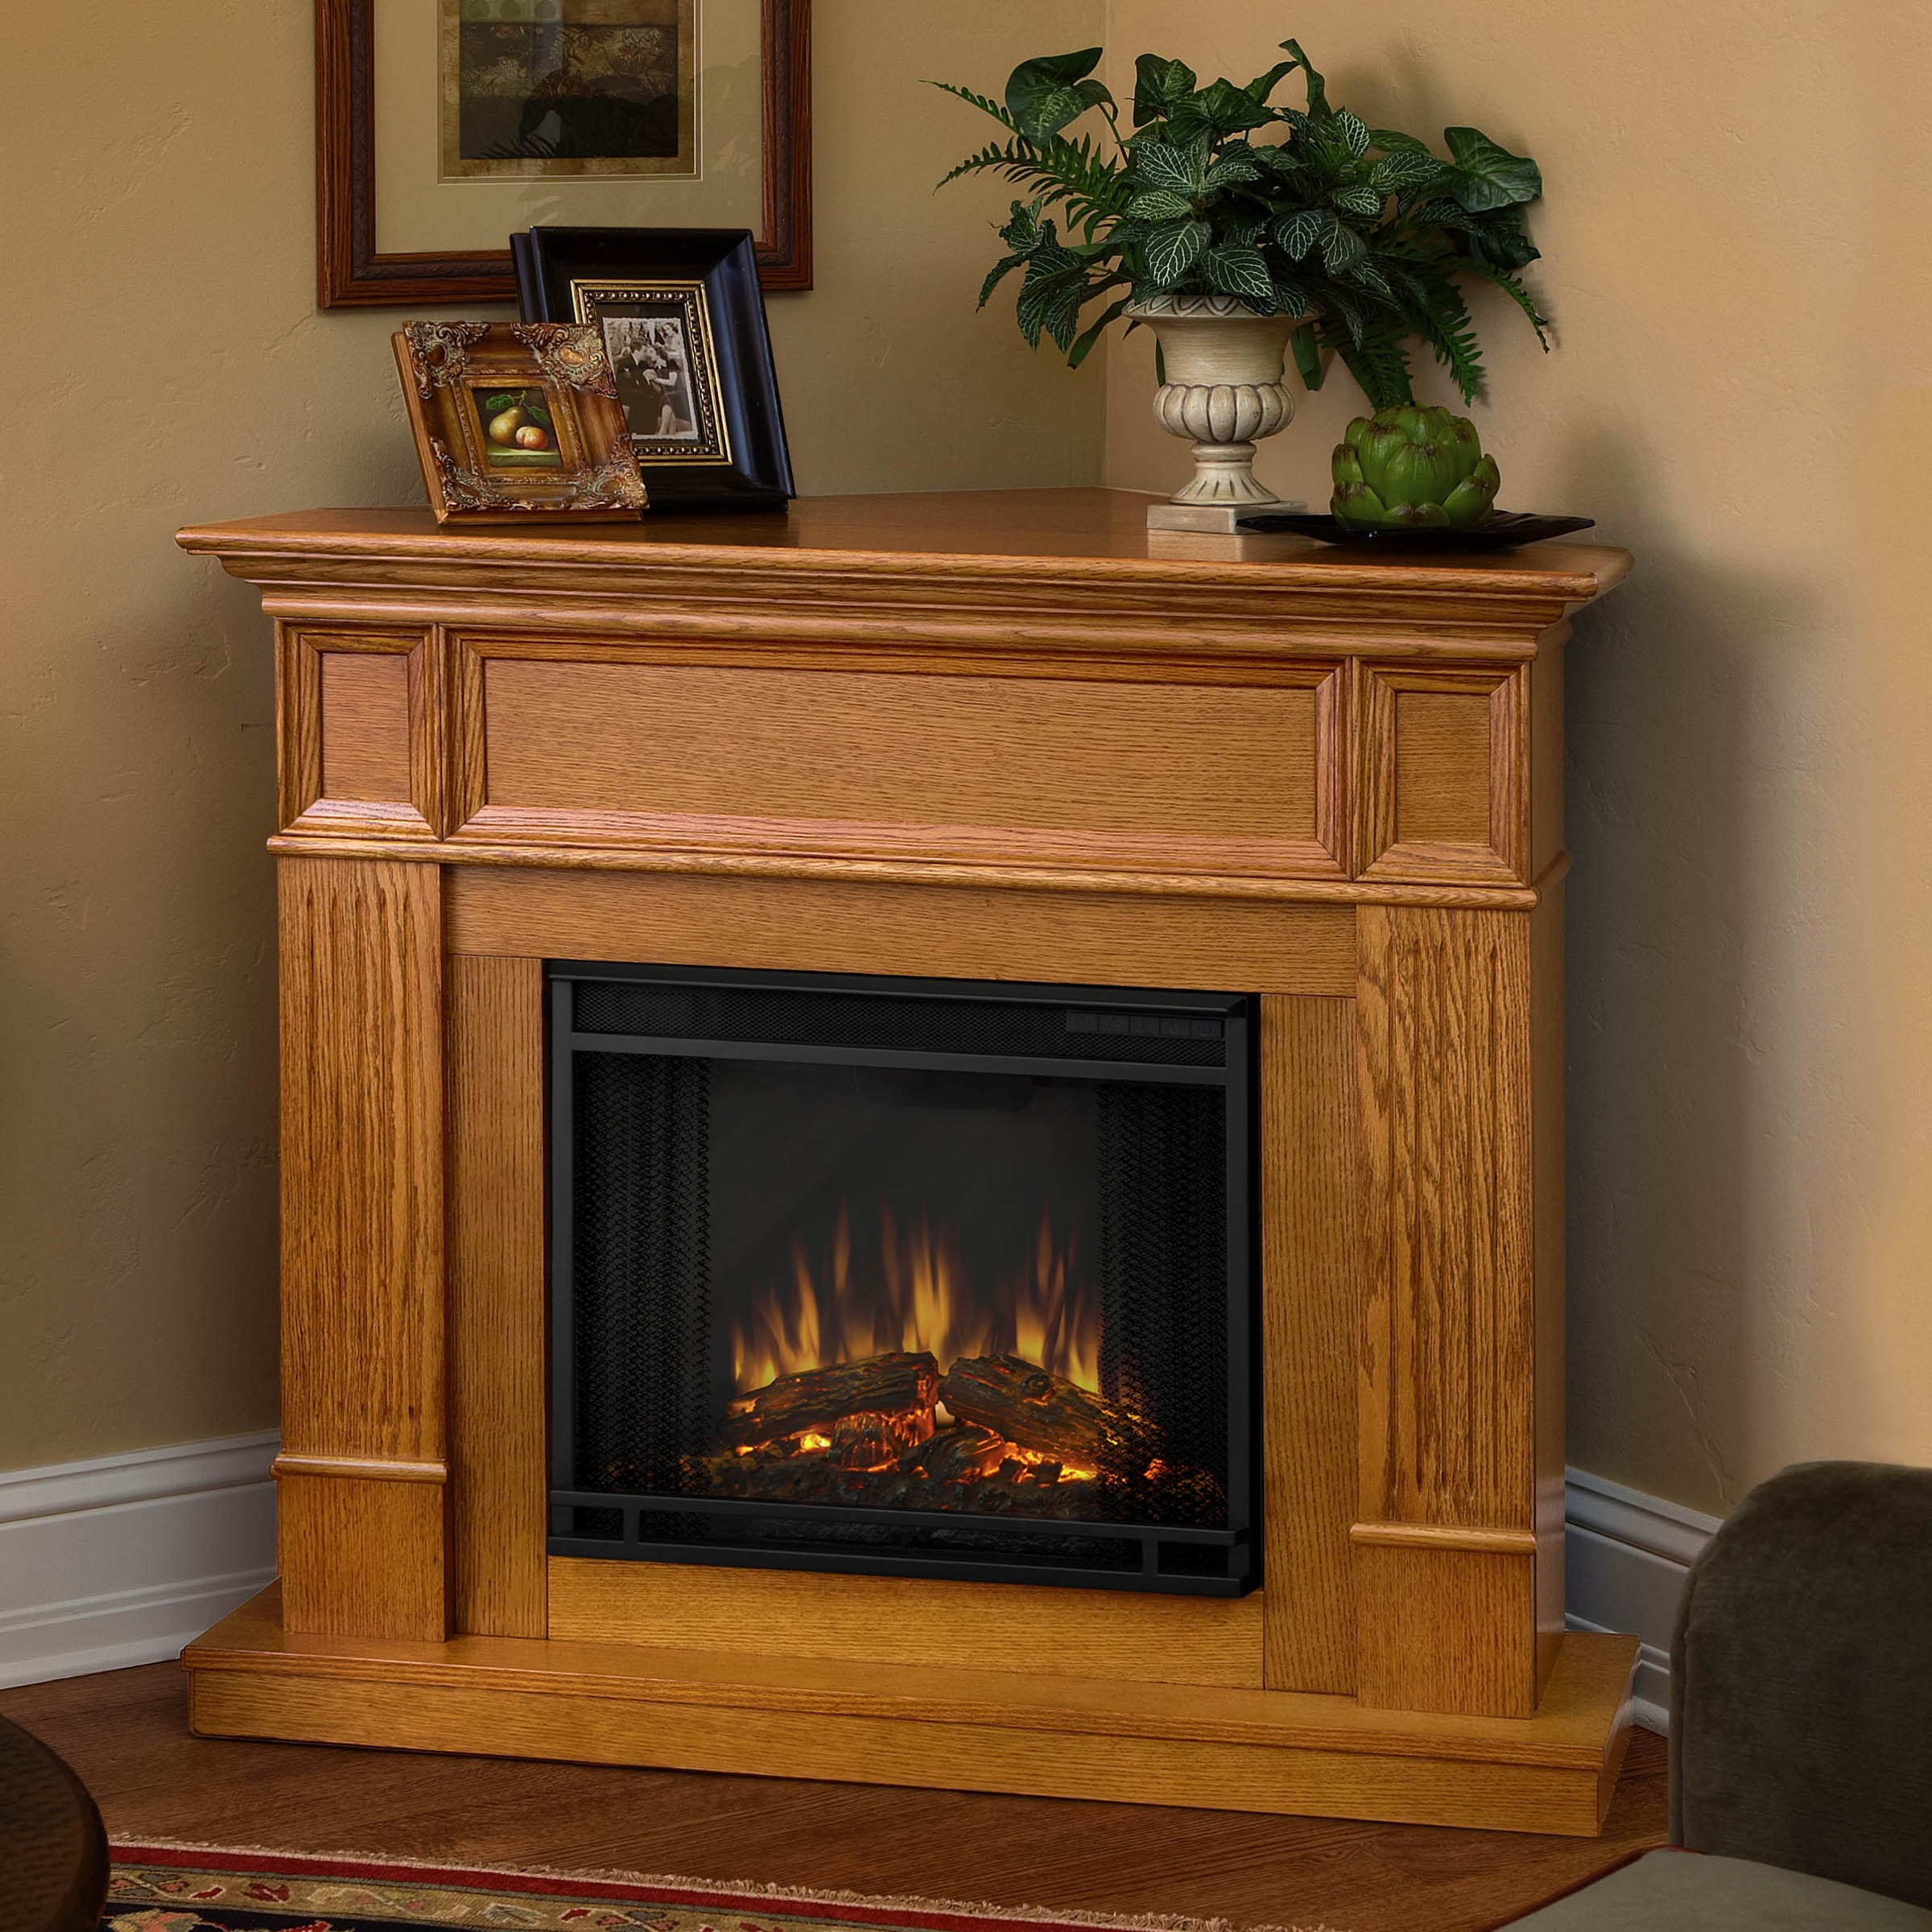 SpaceSaving Corner Electric Fireplace  Providing Warmth for Your Small Space  Ideas 4 Homes